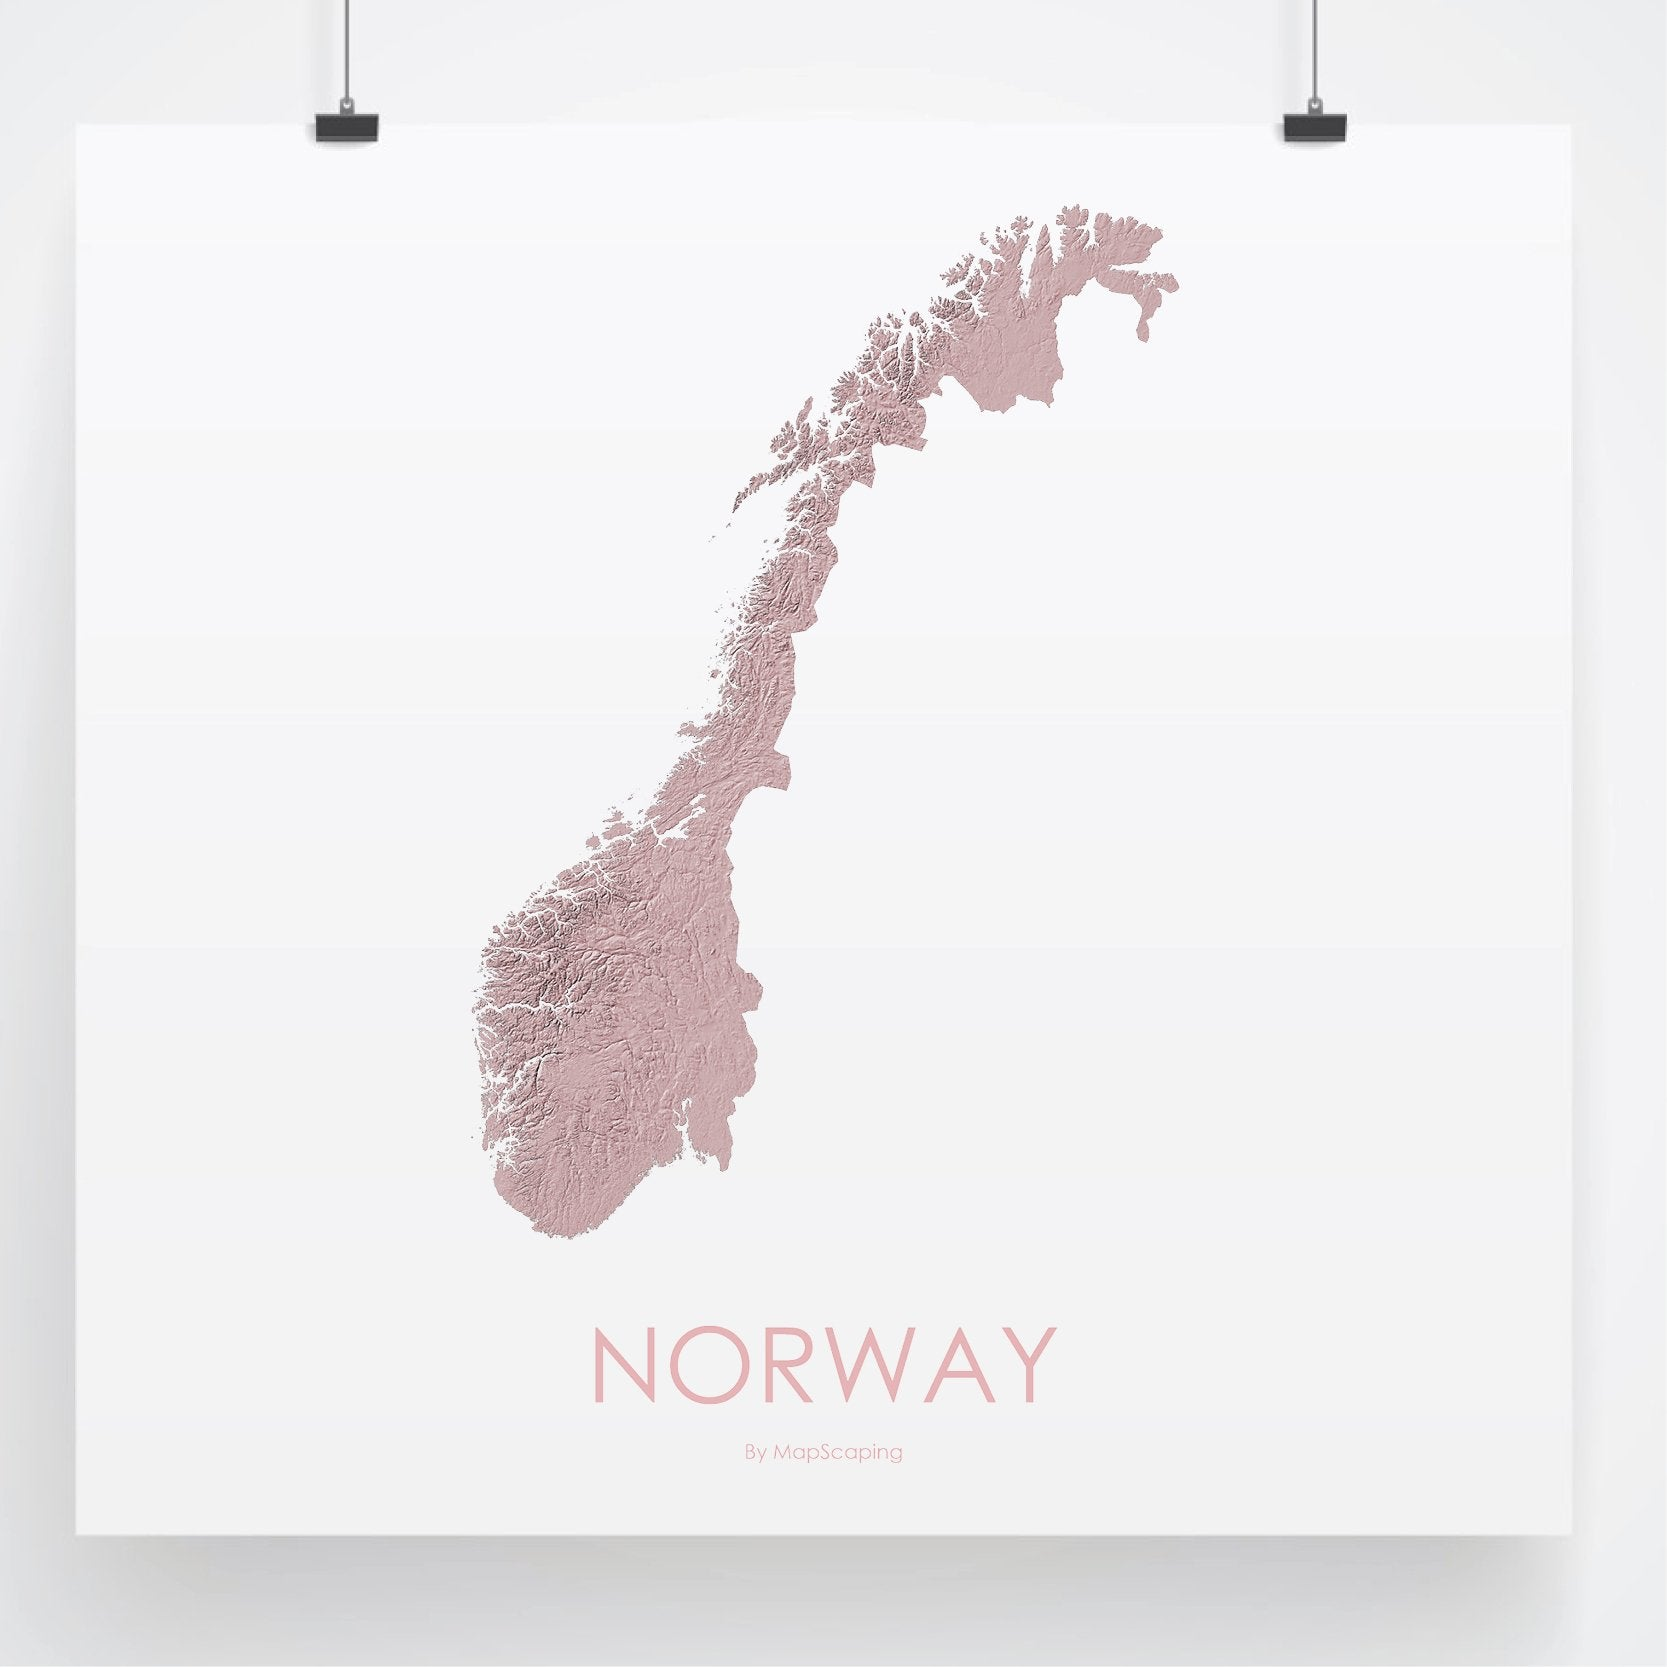 Topographic Map Of Norway.Norway Poster Solid Rose Topographic Map Art By Mapscaping